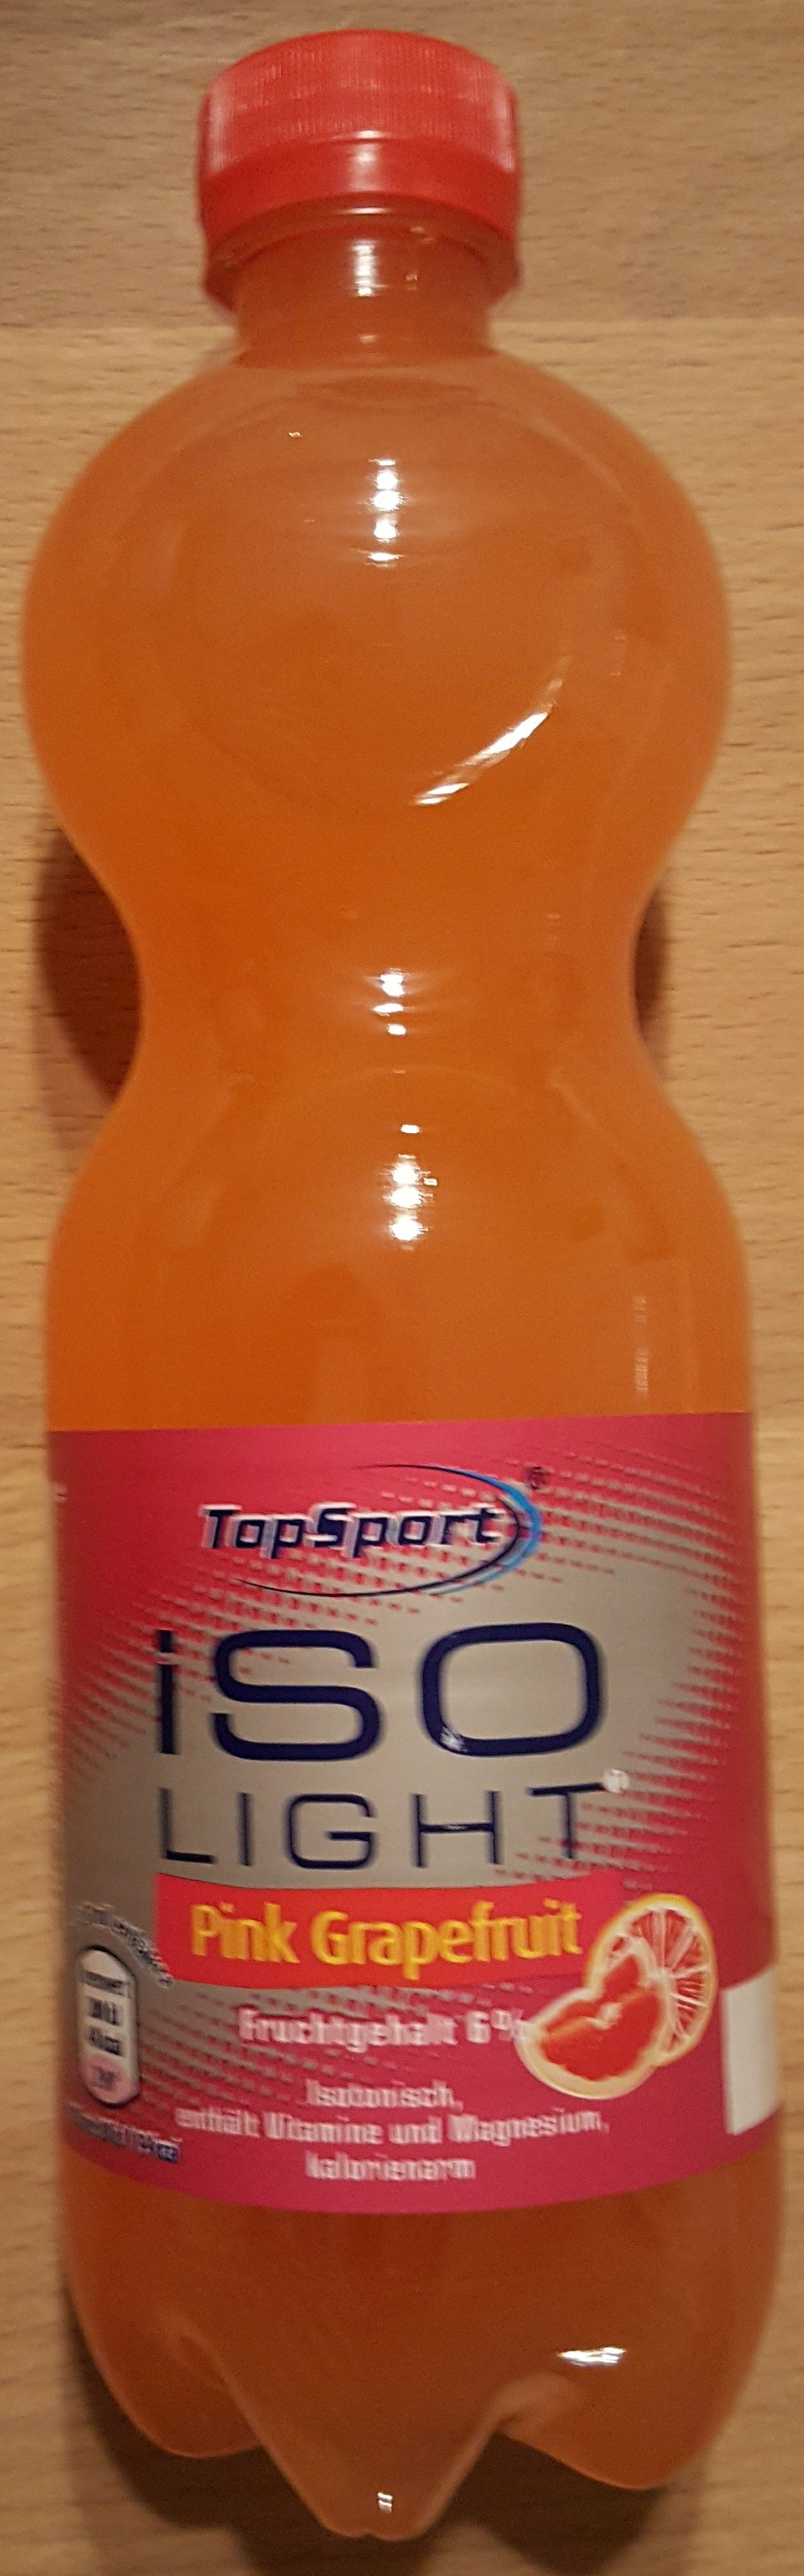 iSO light Pink Grapefruit - Produit - de